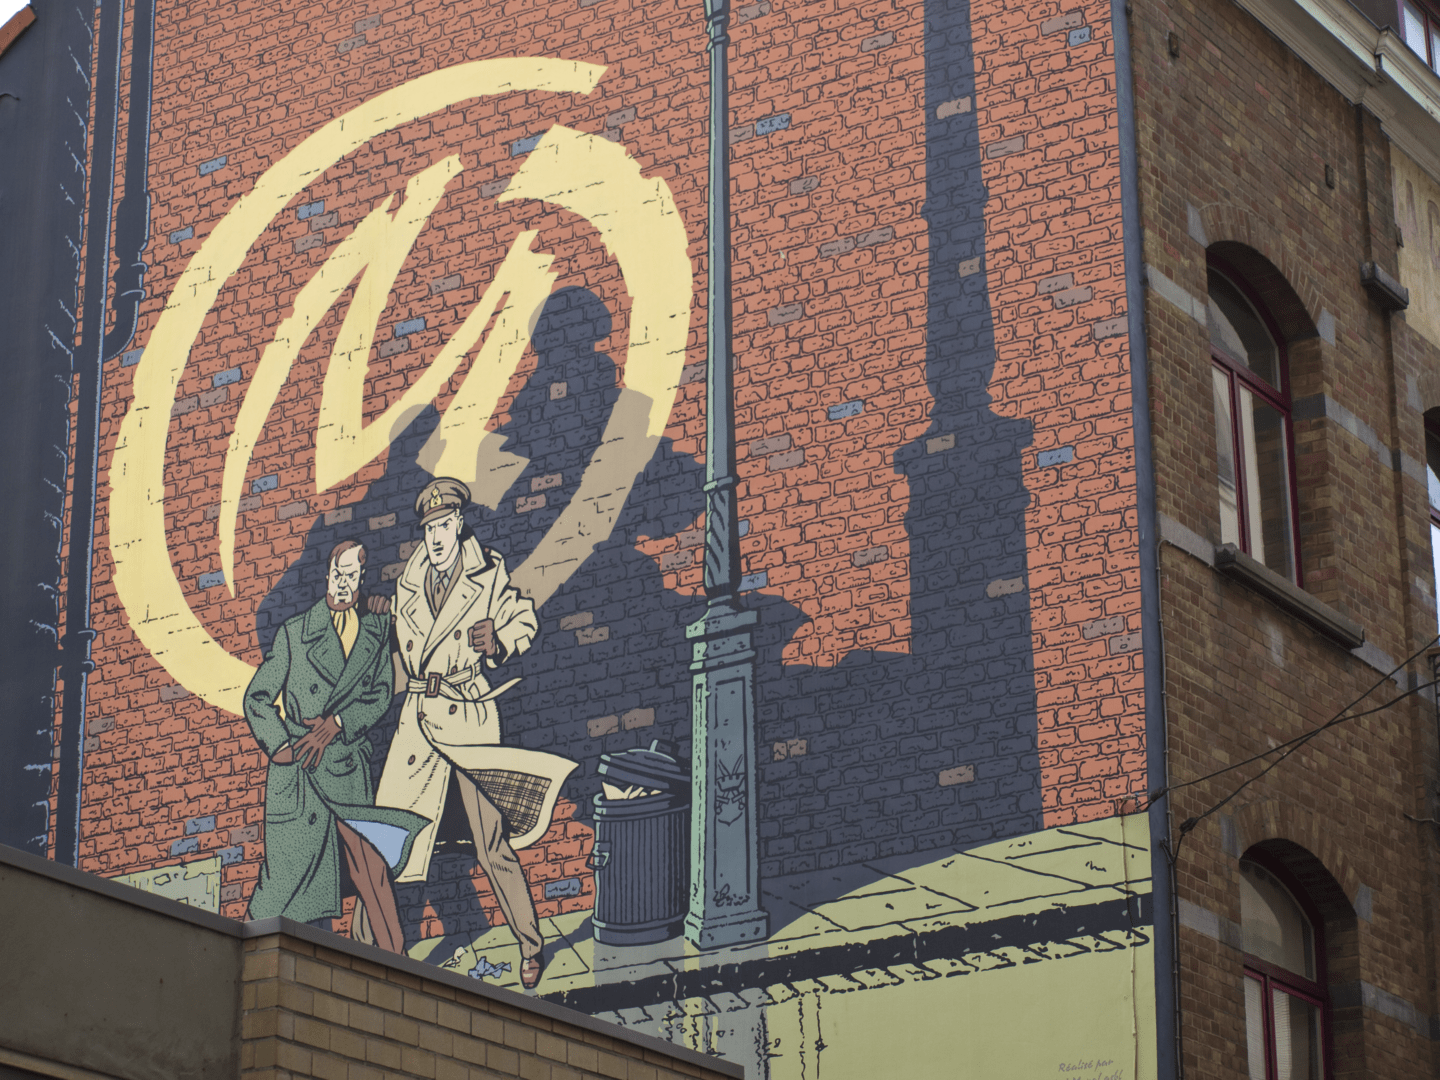 Brussels Comic Book Route